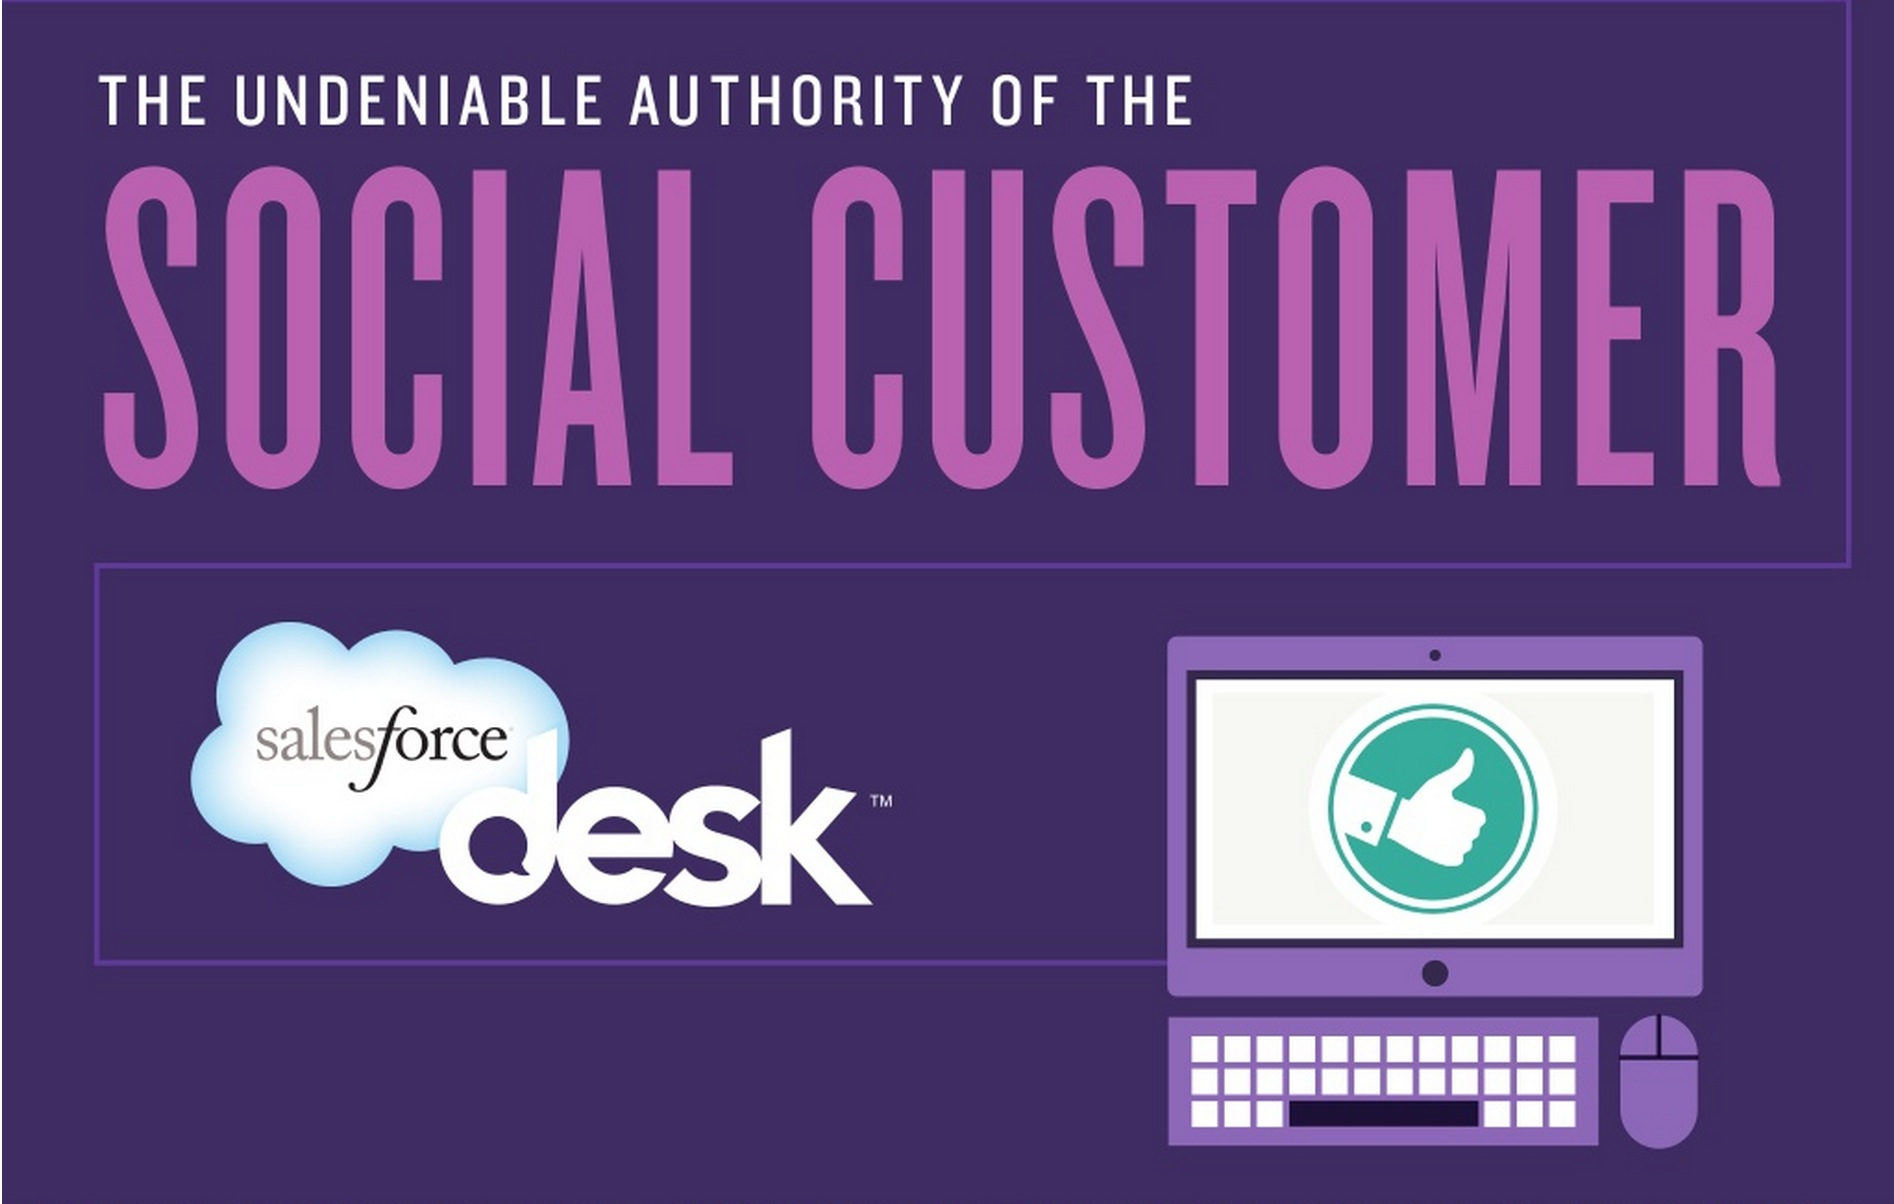 Presentation: The Undeniable Authority of the Social Customer